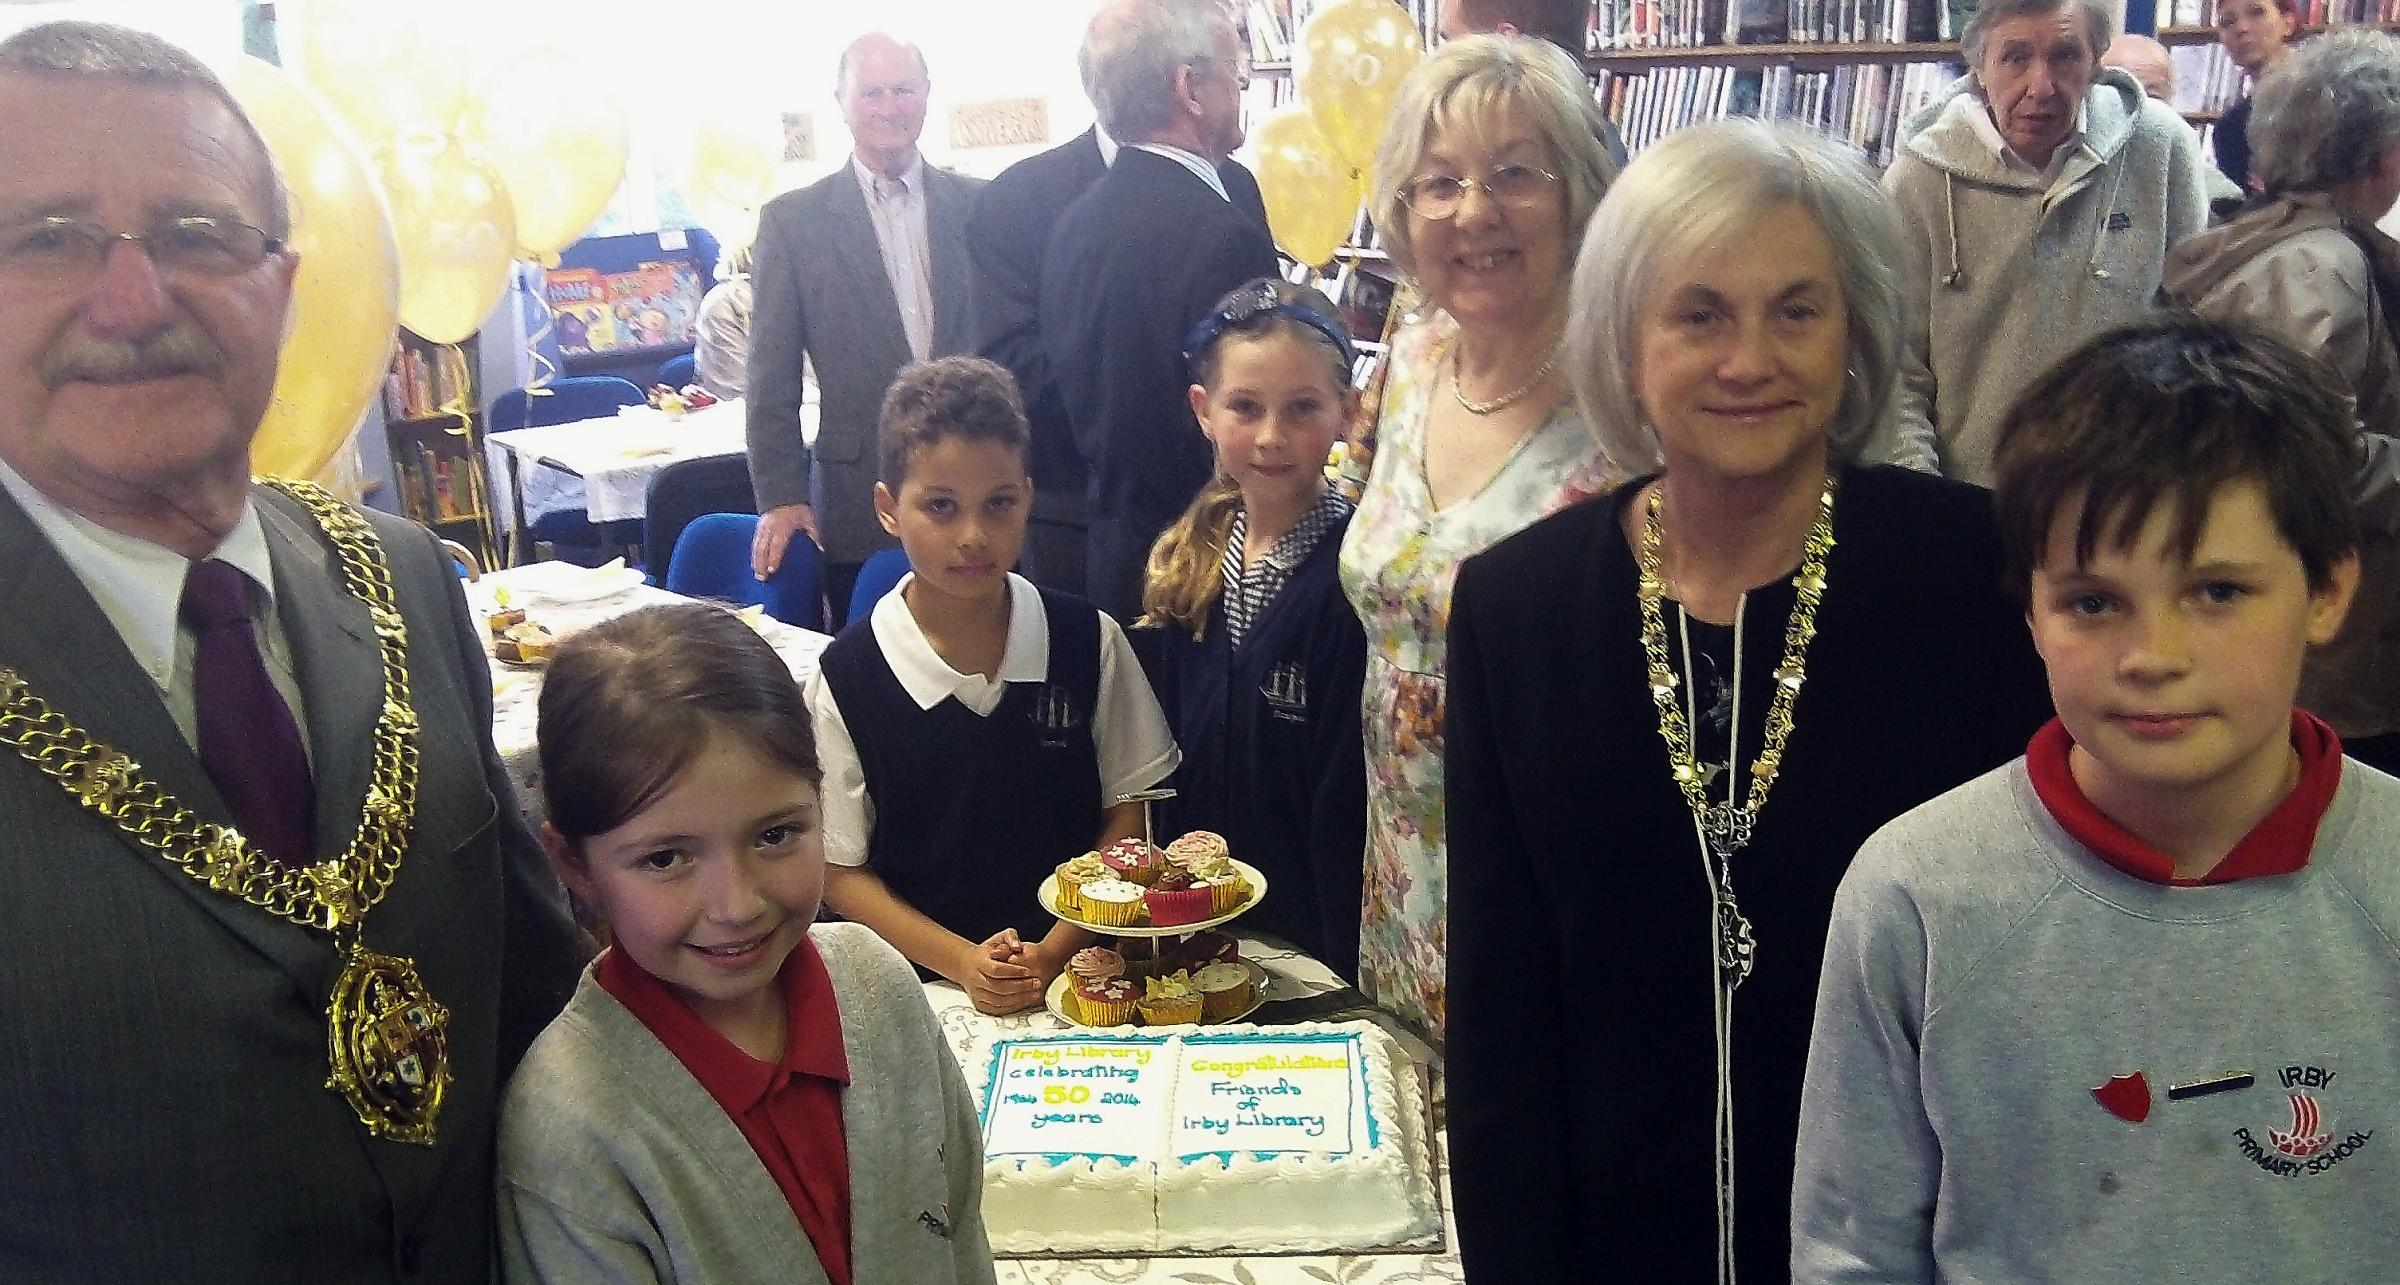 Mayor and mayoress, Cllr Dave and Sue Mitchell, with children from Irby and Dawpool Primary schools with Jacqueline McKelvie at this afternoon's tea party. Picture: Craig Manning